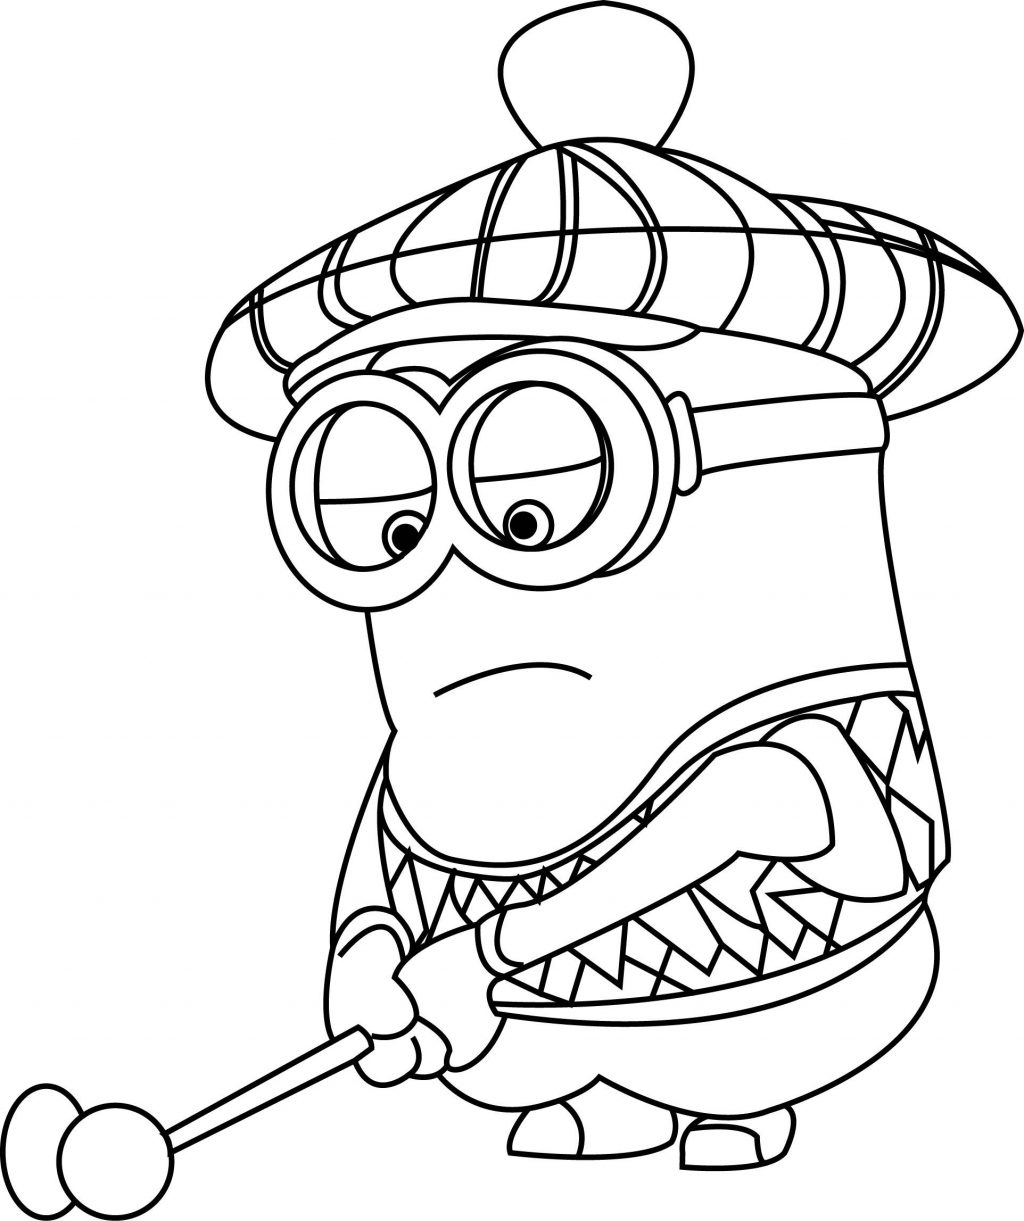 free minion coloring pages minion coloring pages free coloring pages printable coloring free pages minion